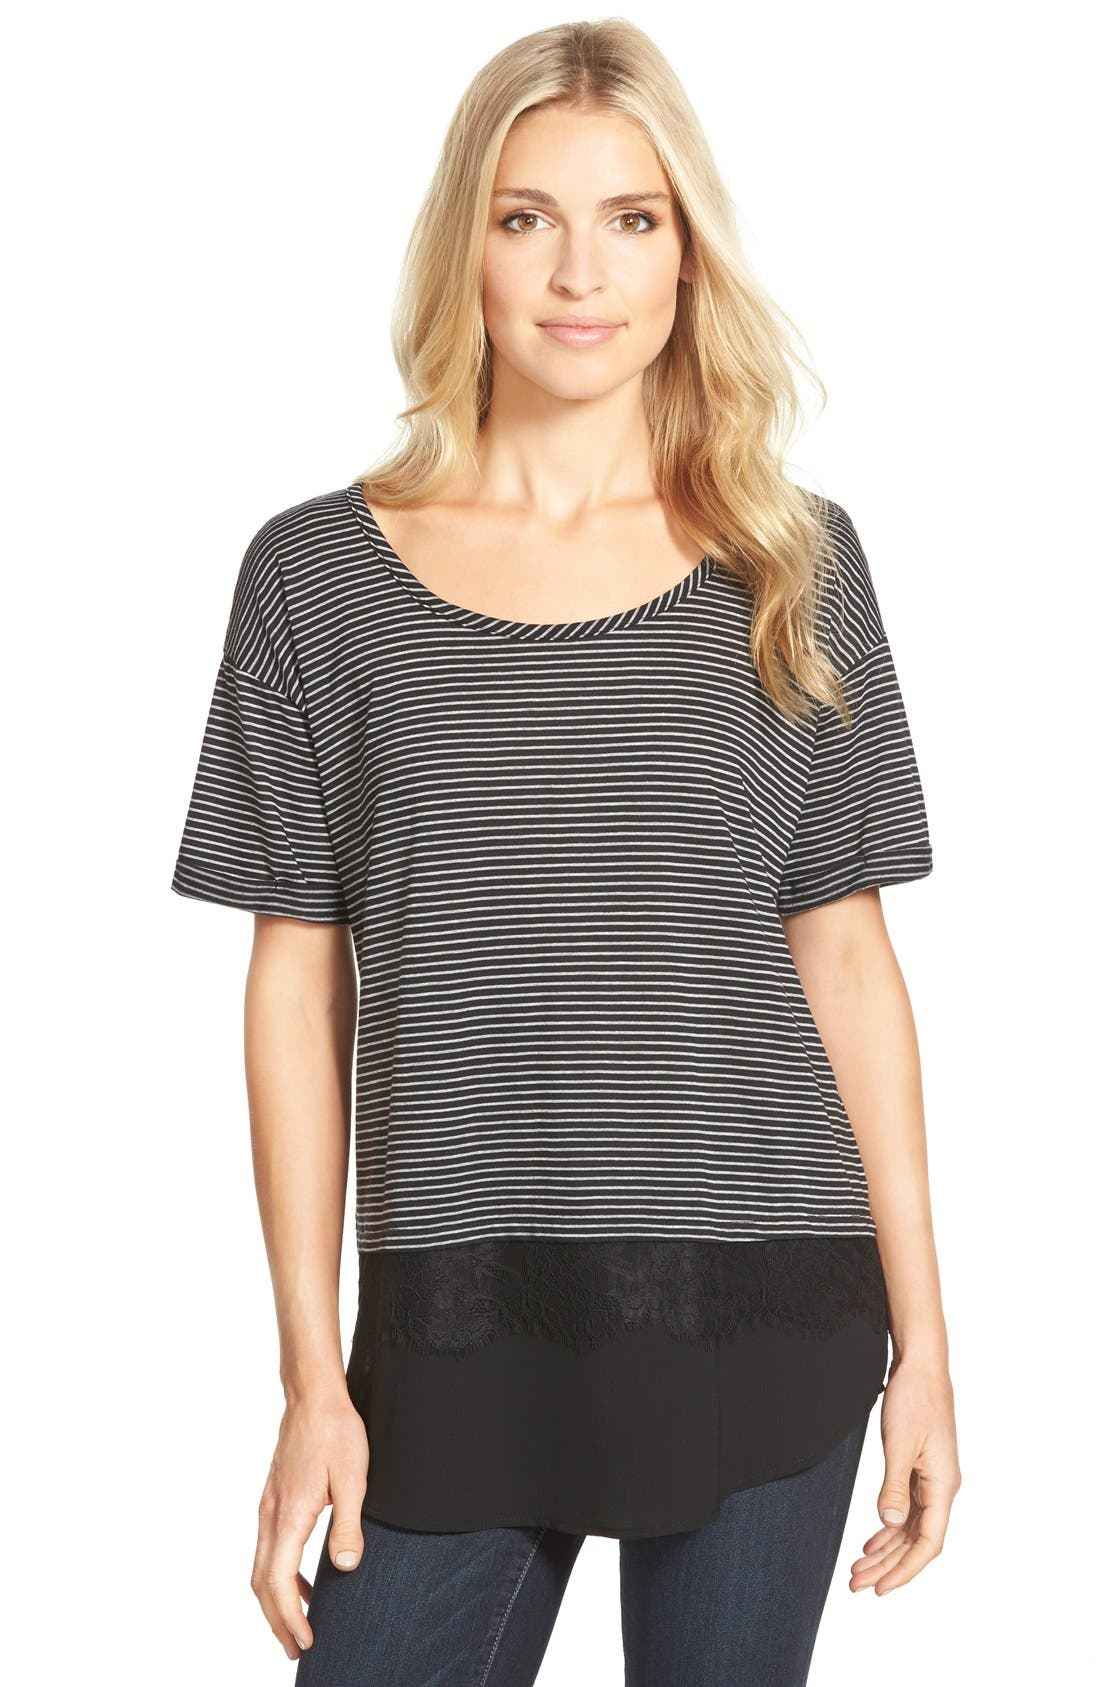 Lace Trim Layered Look Tee,                         Main,                         color, 002